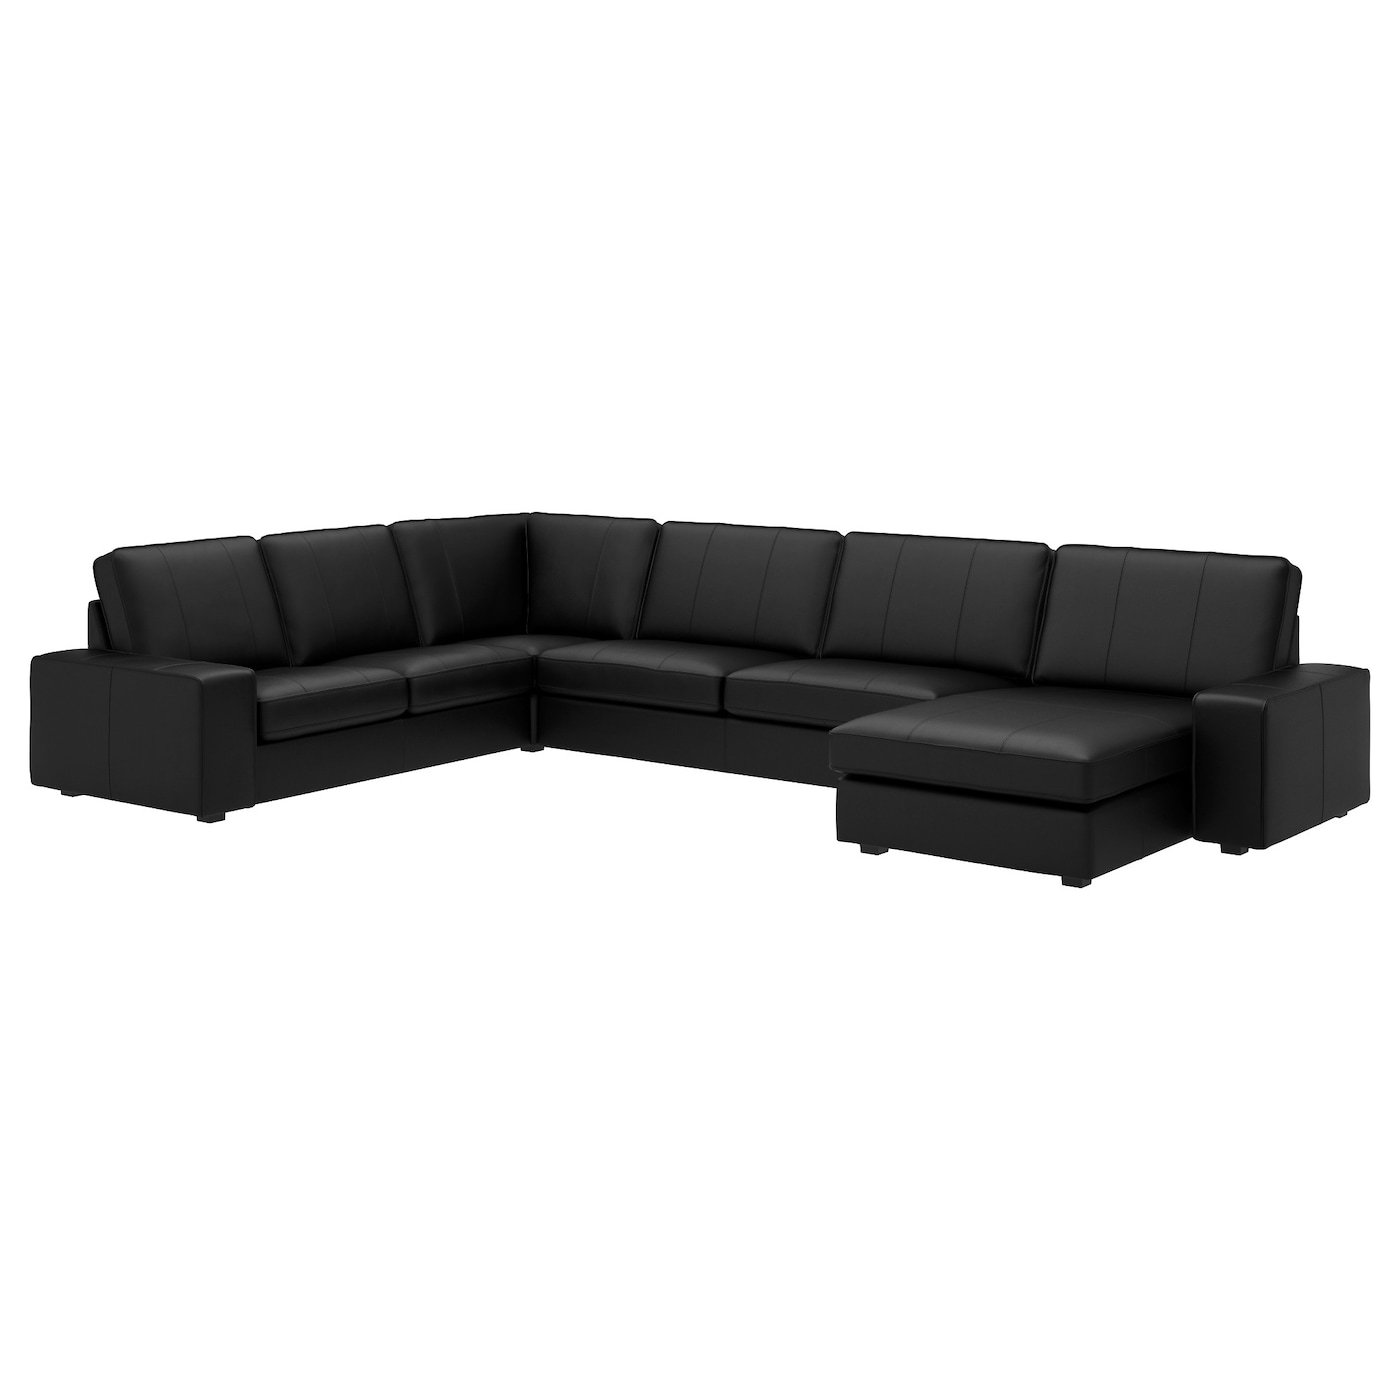 IKEA KIVIK corner sofa, 6-seat 10 year guarantee. Read about the terms in the guarantee brochure.